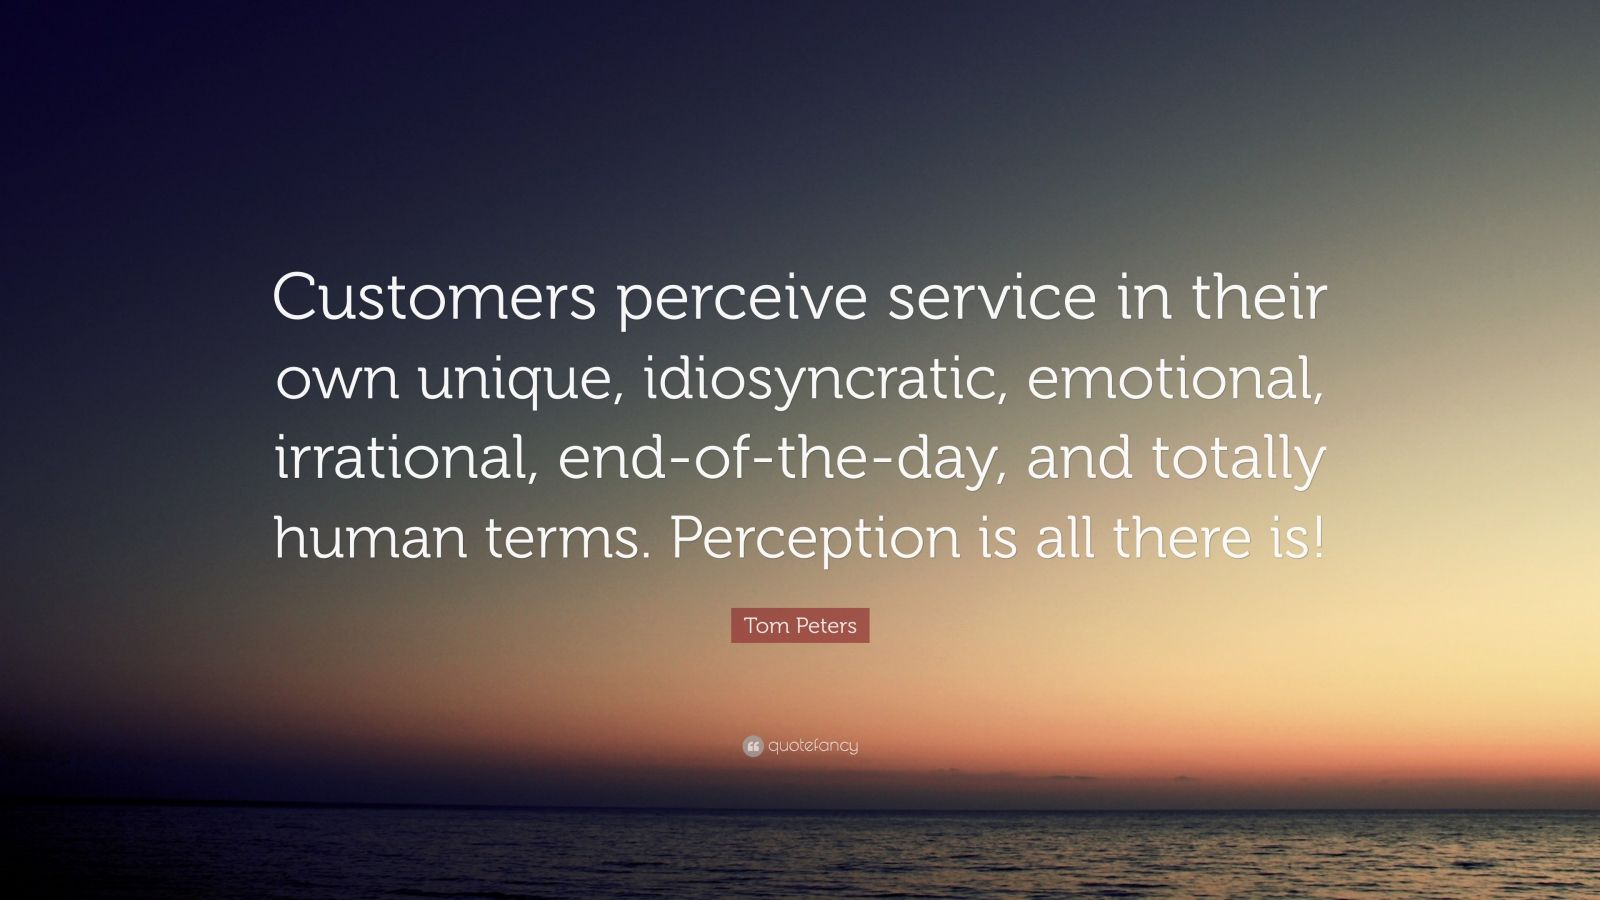 """Tom Peters Quote: """"Customers perceive service in their own unique, idiosyncratic, emotional, irrational, end-of-the-day, and totally human terms. Perception is all there is!"""""""